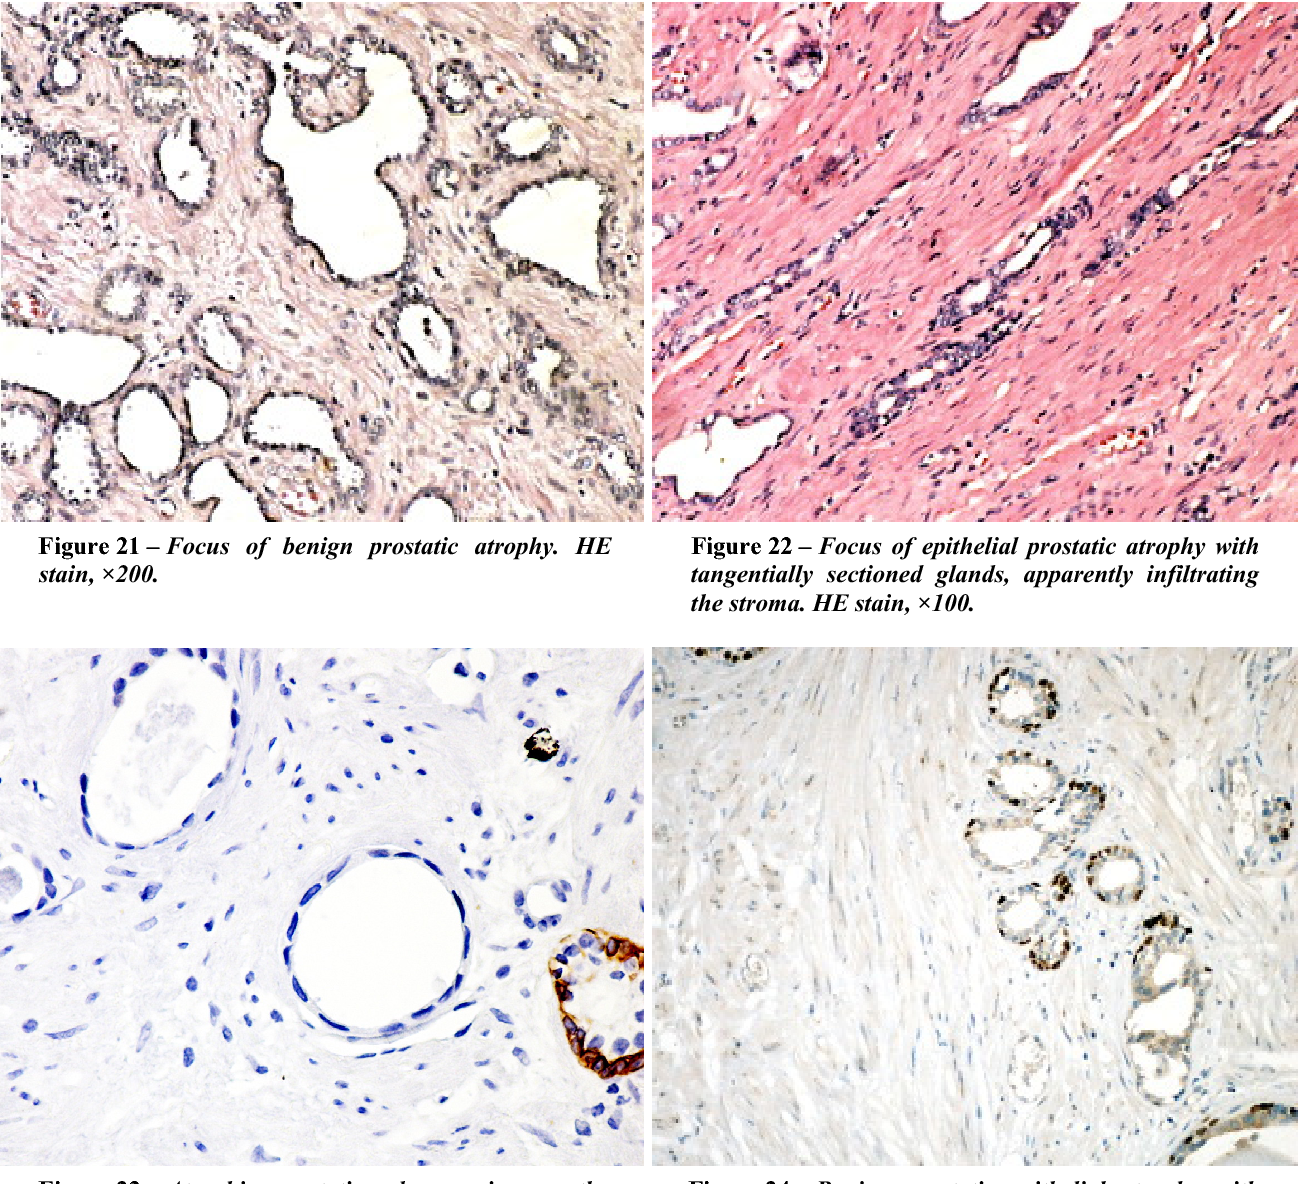 Figure 22 – Focus of epithelial prostatic atrophy with tangentially sectioned glands, apparently infiltrating the stroma. HE stain, ×100.